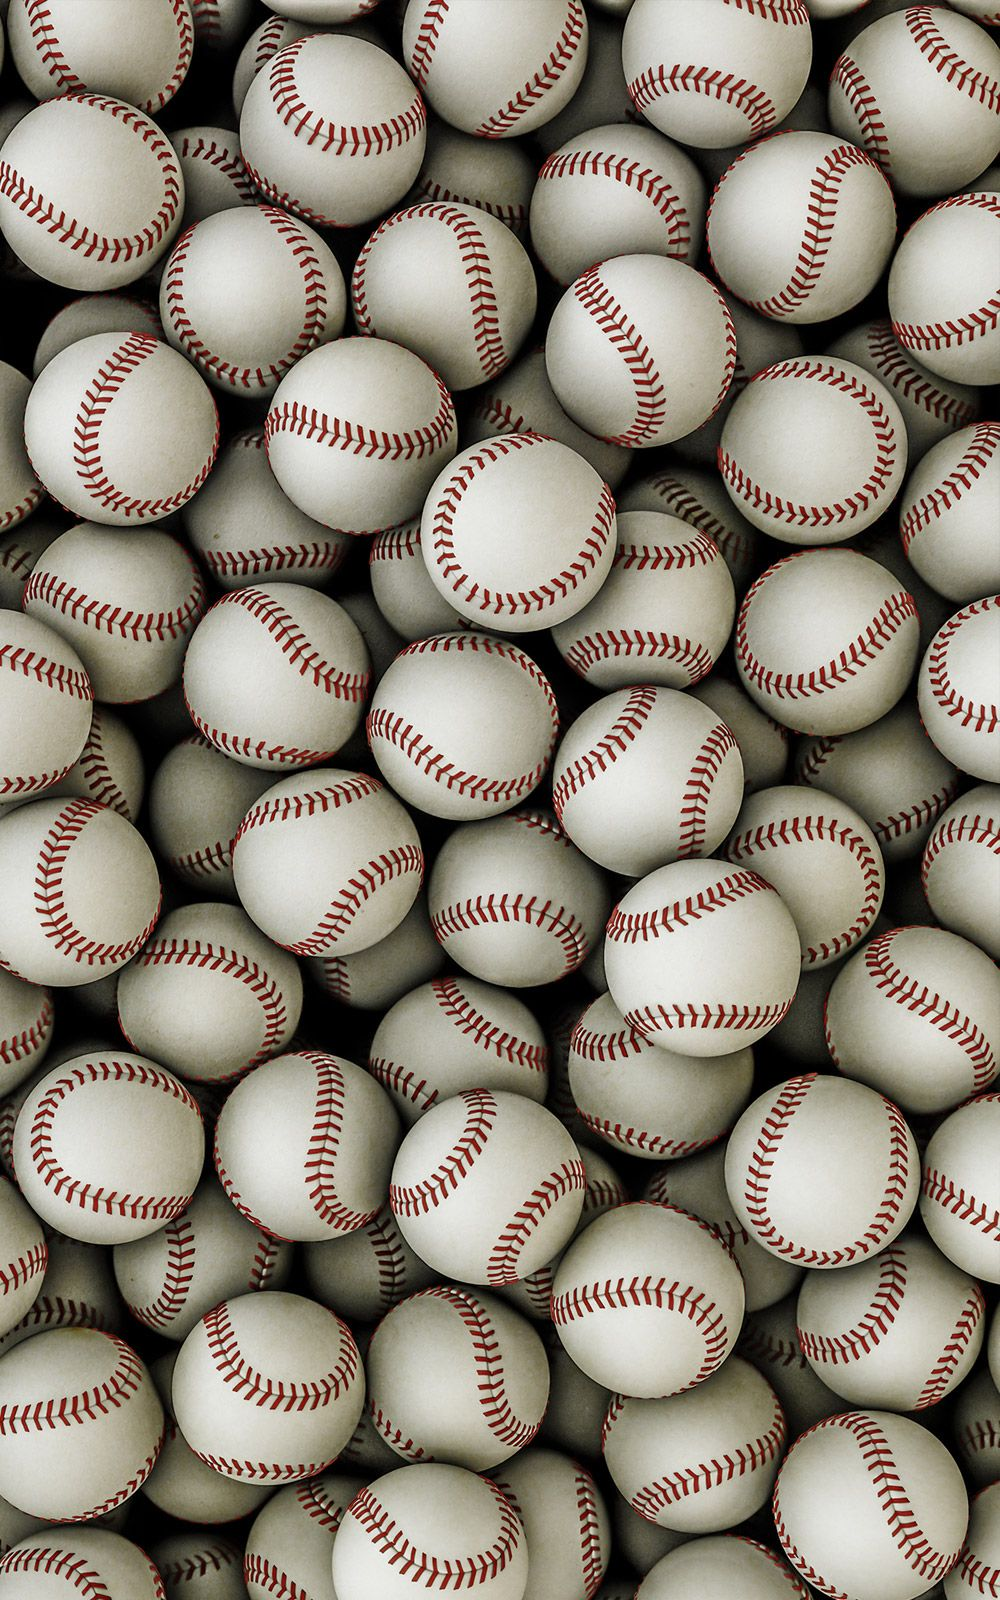 Baseball Wallpaper HD High Definition